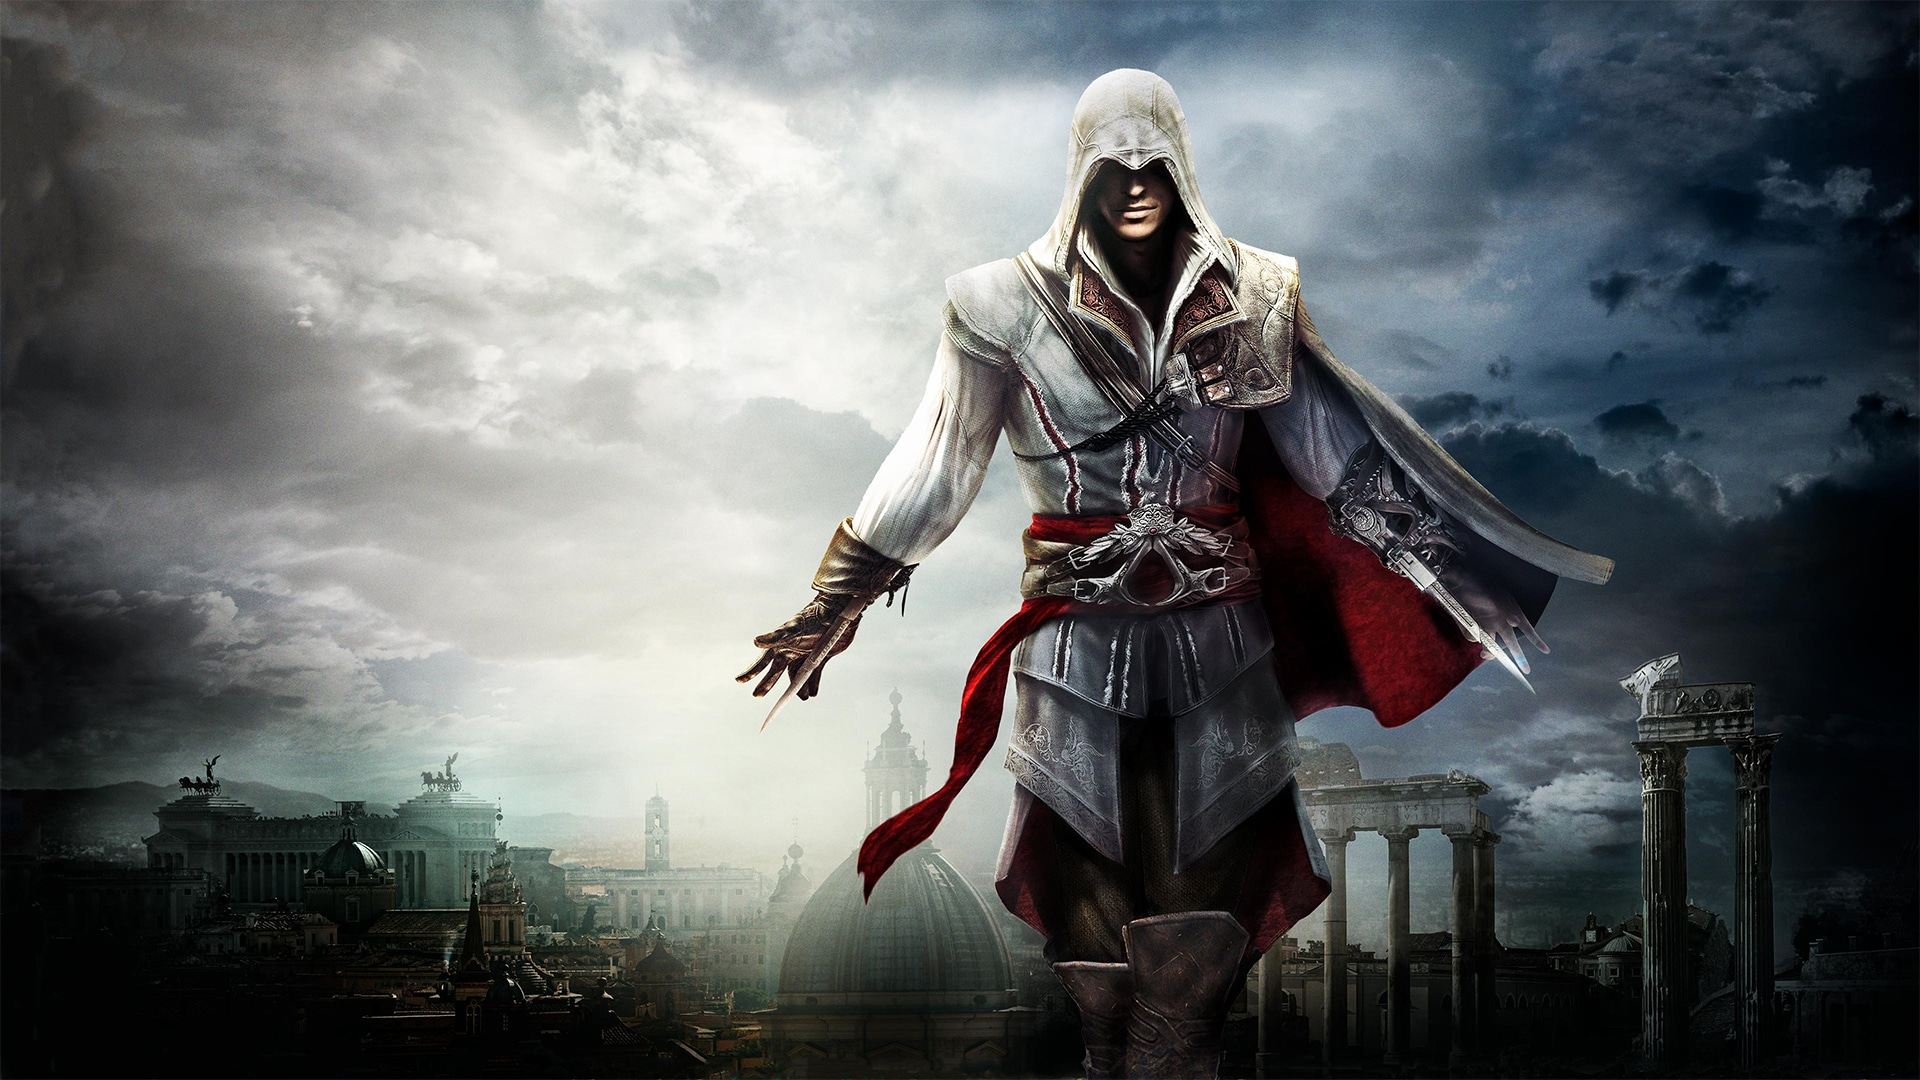 Ezio Assassins Creed Infinity live service is Ubisoft solution to franchise bloat, focus over jobs & sidequests for Assassin's Creed Infinity